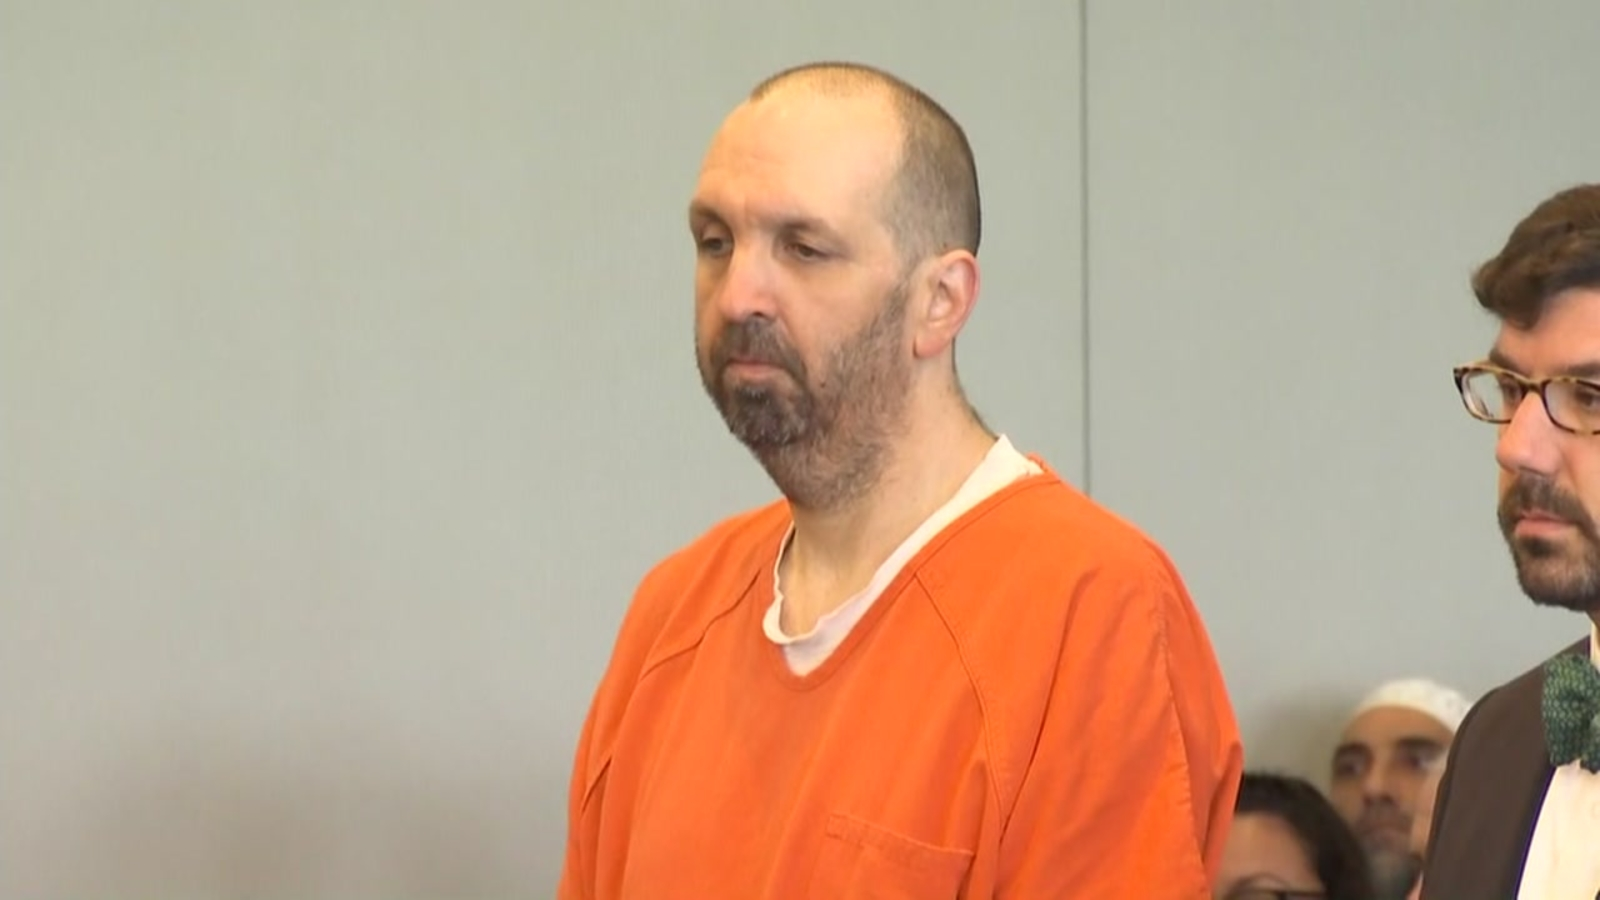 'Cold-hearted malice:' Craig Hicks to spend life in prison for murder of 3 Muslim students in 2015